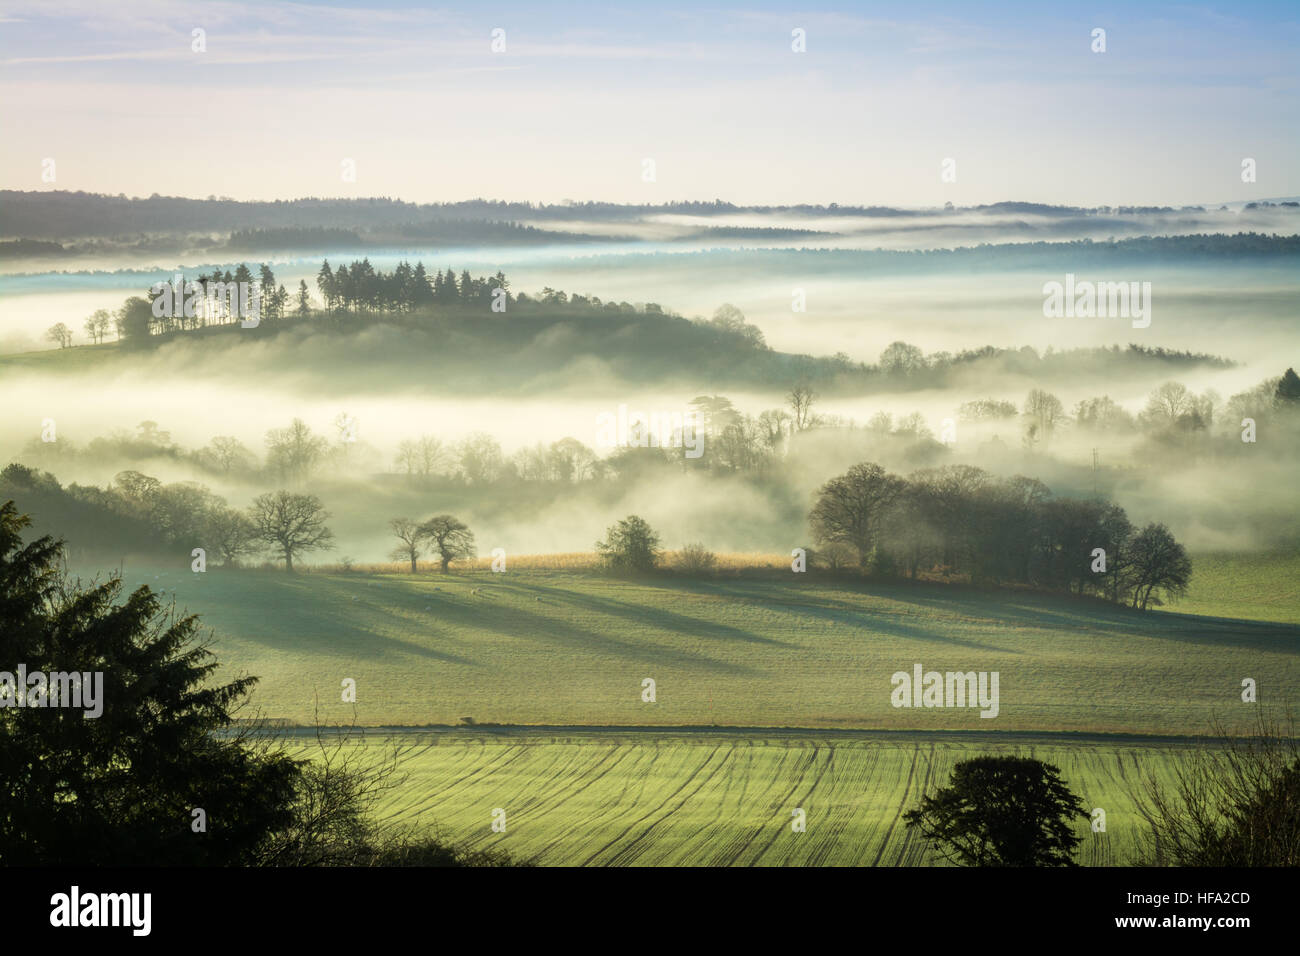 newlands-corner-in-the-surrey-hills-aonb-uk-an-early-morning-misty-HFA2CD.jpg